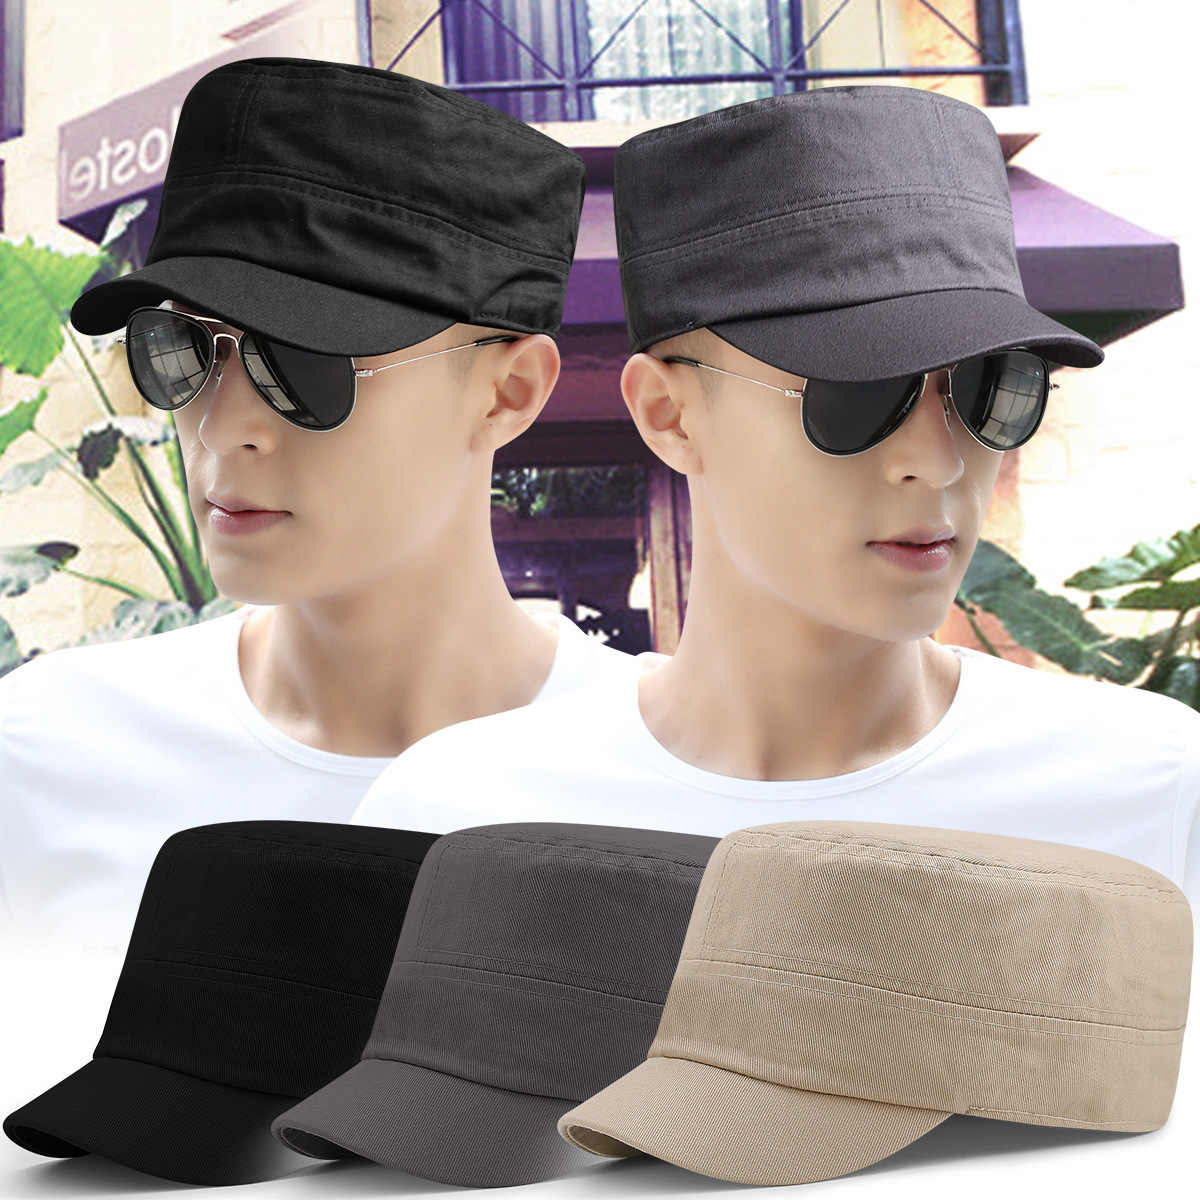 ... Men big head sun hats full close flat army cap male solid color plus  size fitted ... f447b275181